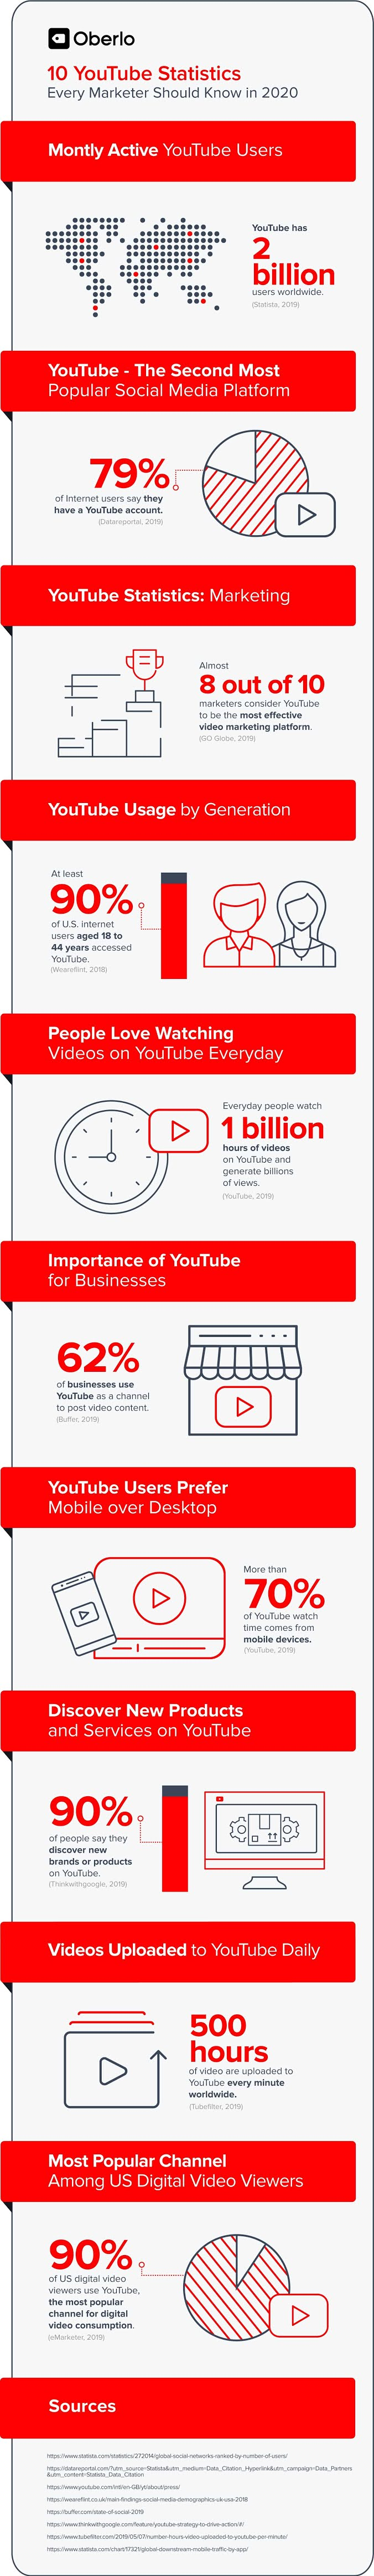 10 Youtube Stats Every Marketer Should Know in 2020 #infographic